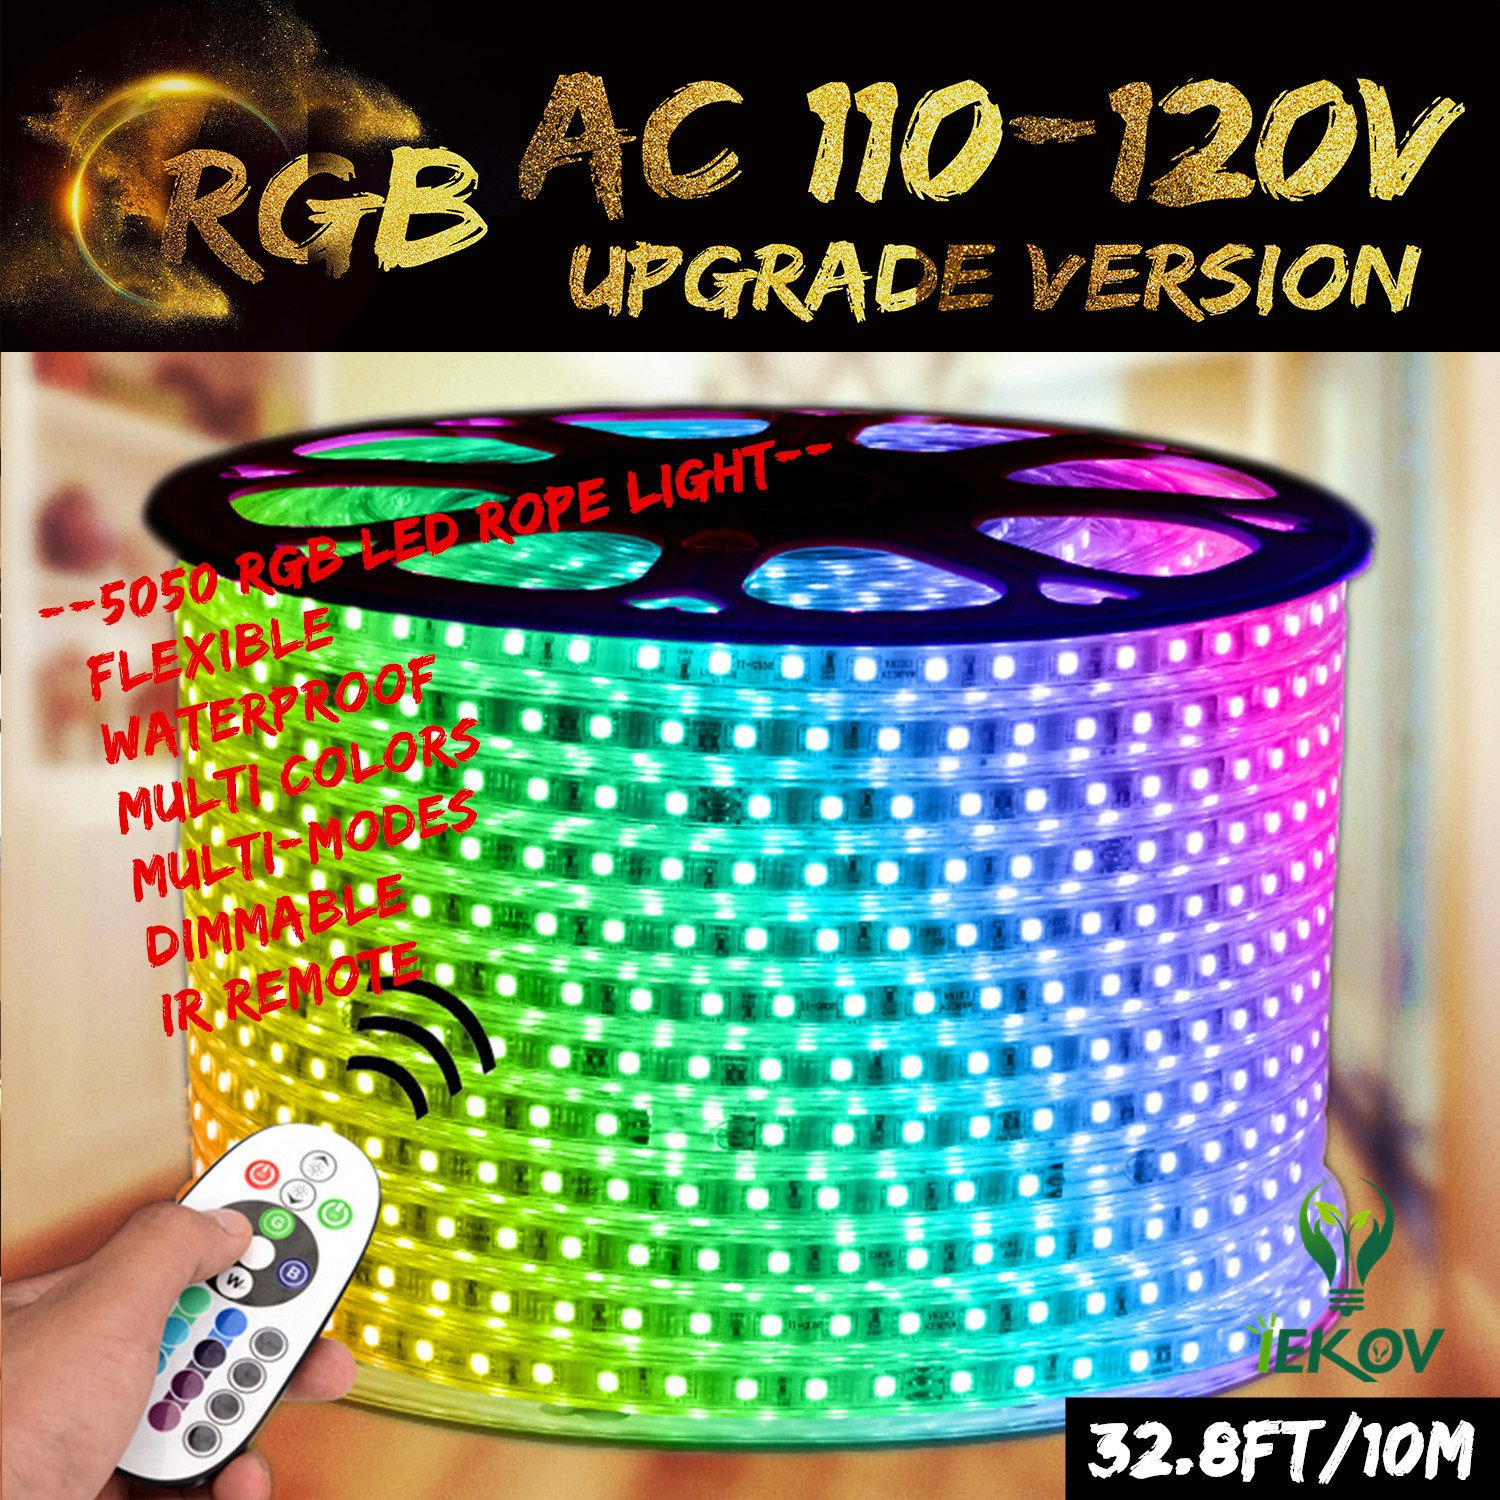 RGB LED Strip Light, IEKOVTM AC 110-120V Flexible/Waterproof/Multi Colors/Multi-Modes function/Dimmable SMD5050 LED Rope Light with Remote for Home/Office/Building Decoration (32.8ft/10m)